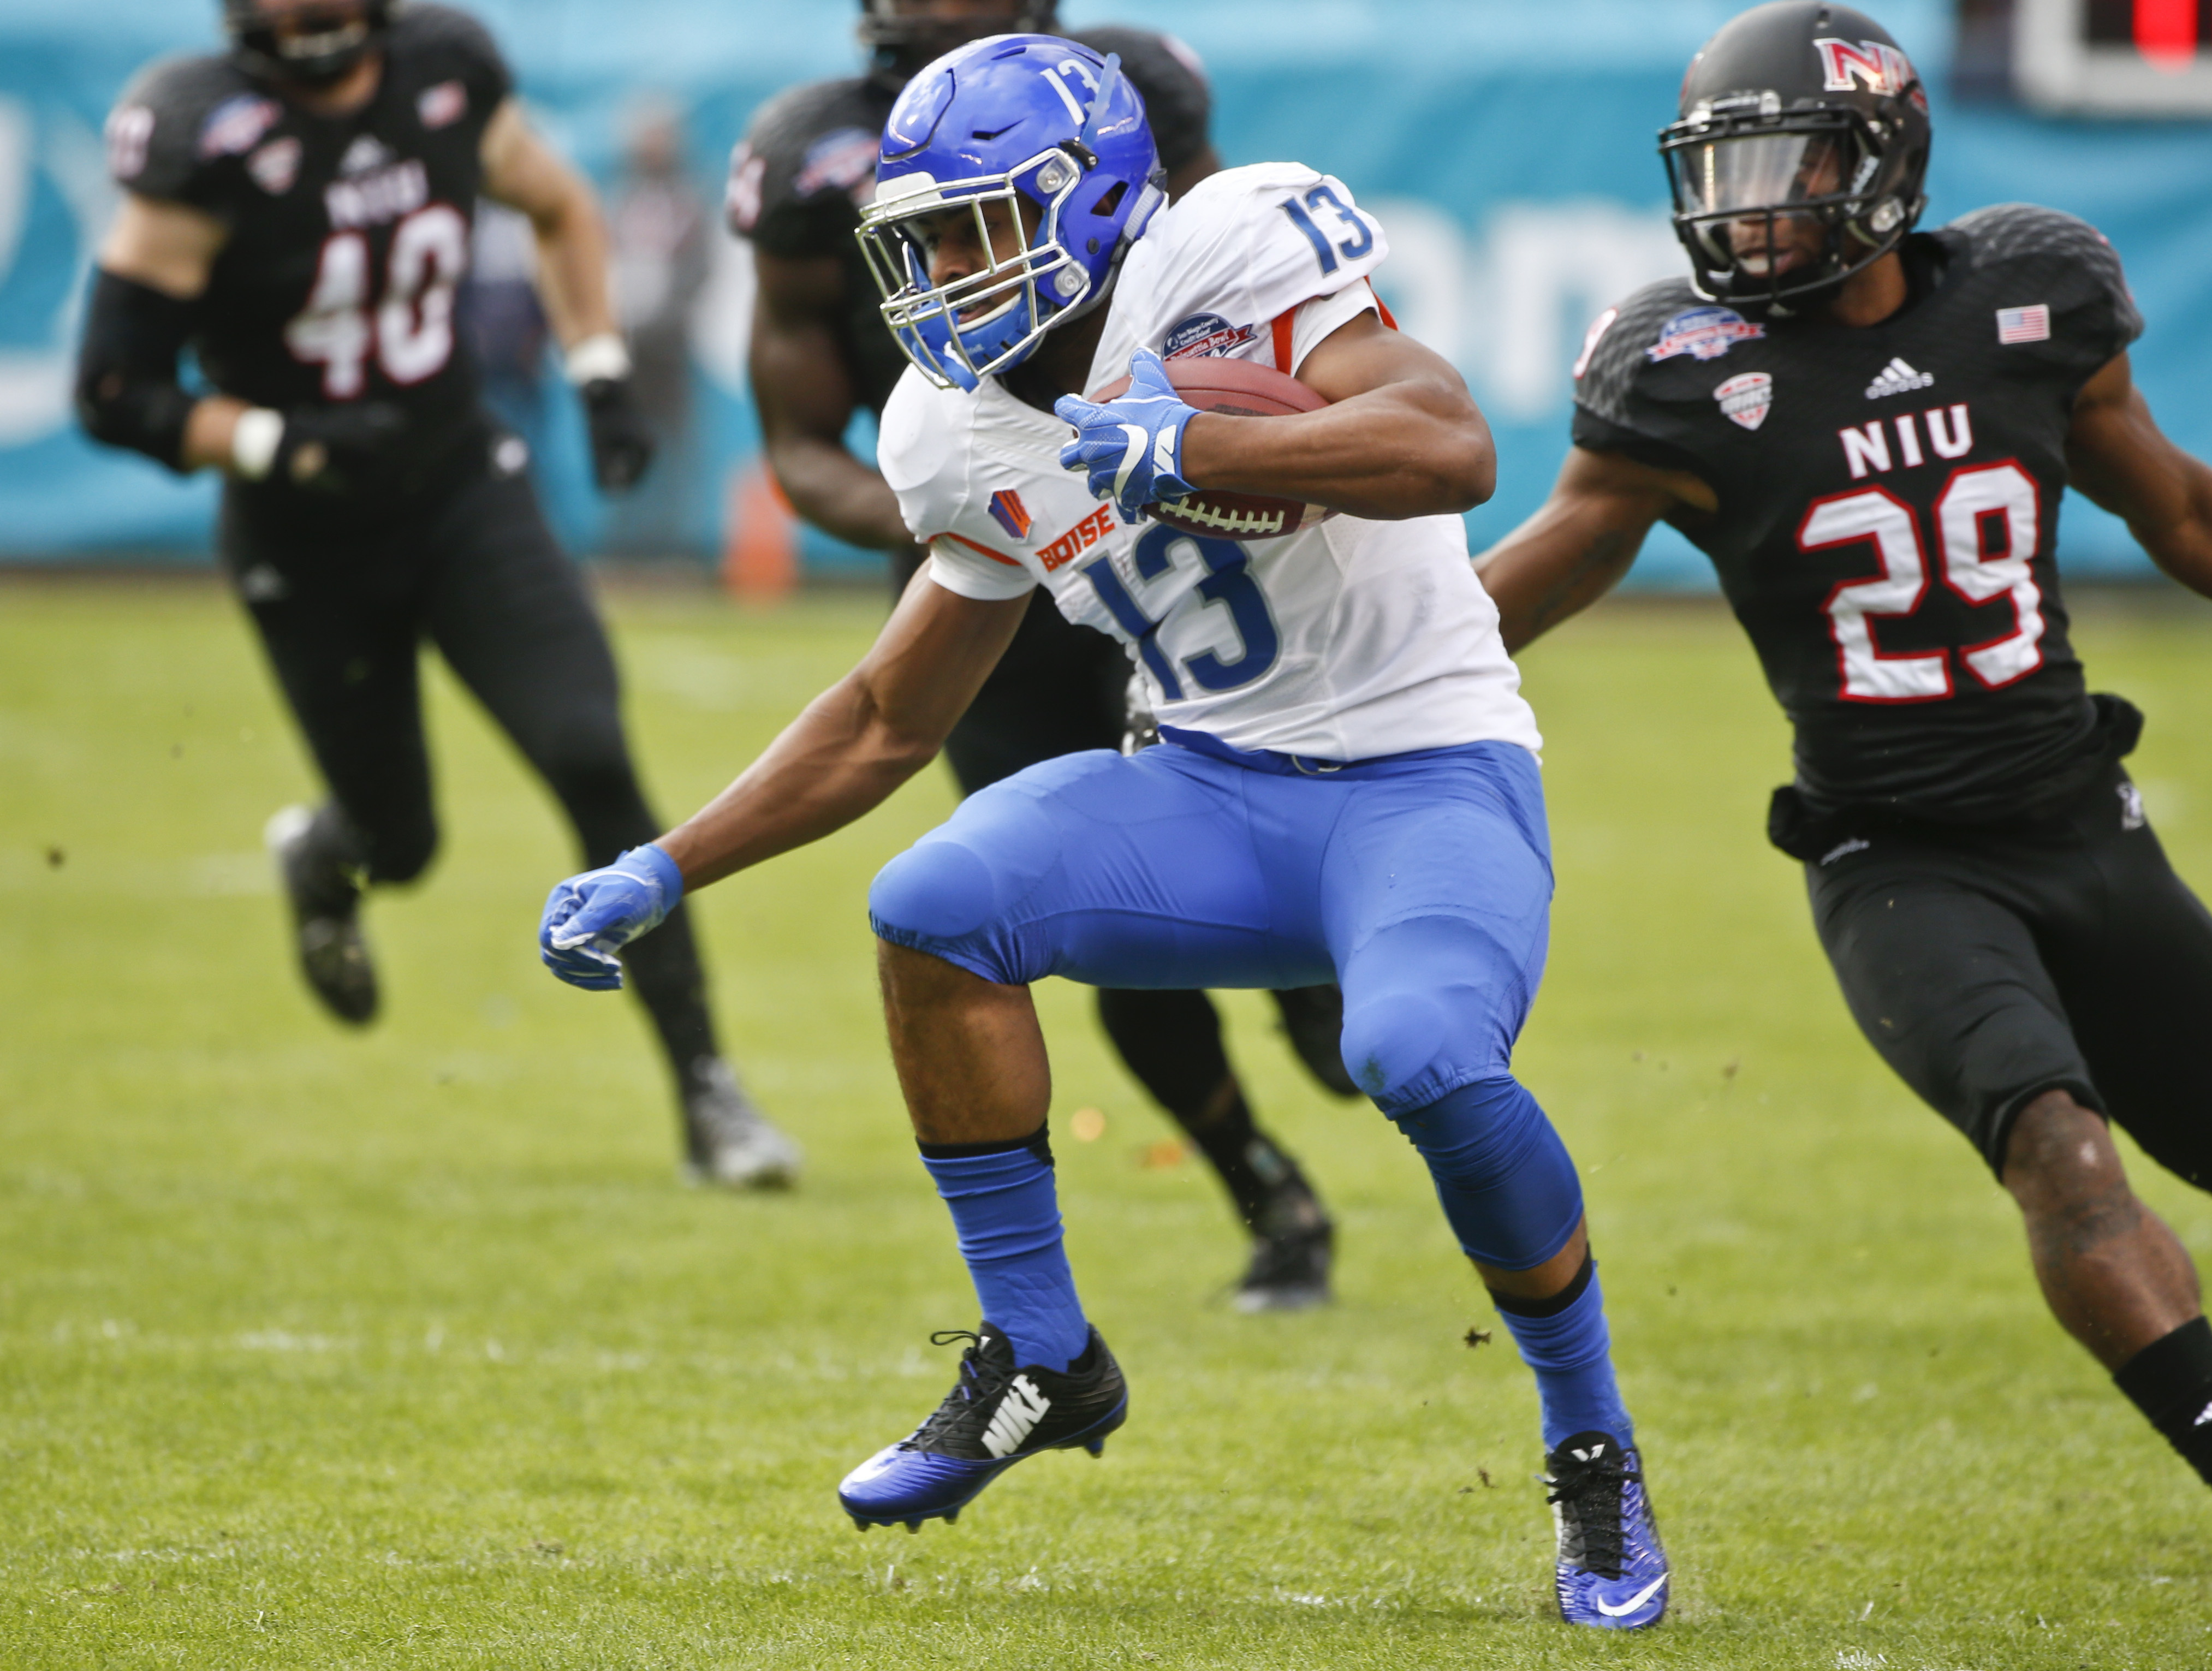 FILE -- In this Dec. 23, 2015, file photo, Boise State running back Jeremy McNichols maneuvers through the Northern Illinois defense with a pass reception during the first half of the Poinsettia Bowl NCAA college football game in San Diego. (AP Photo/Lenn